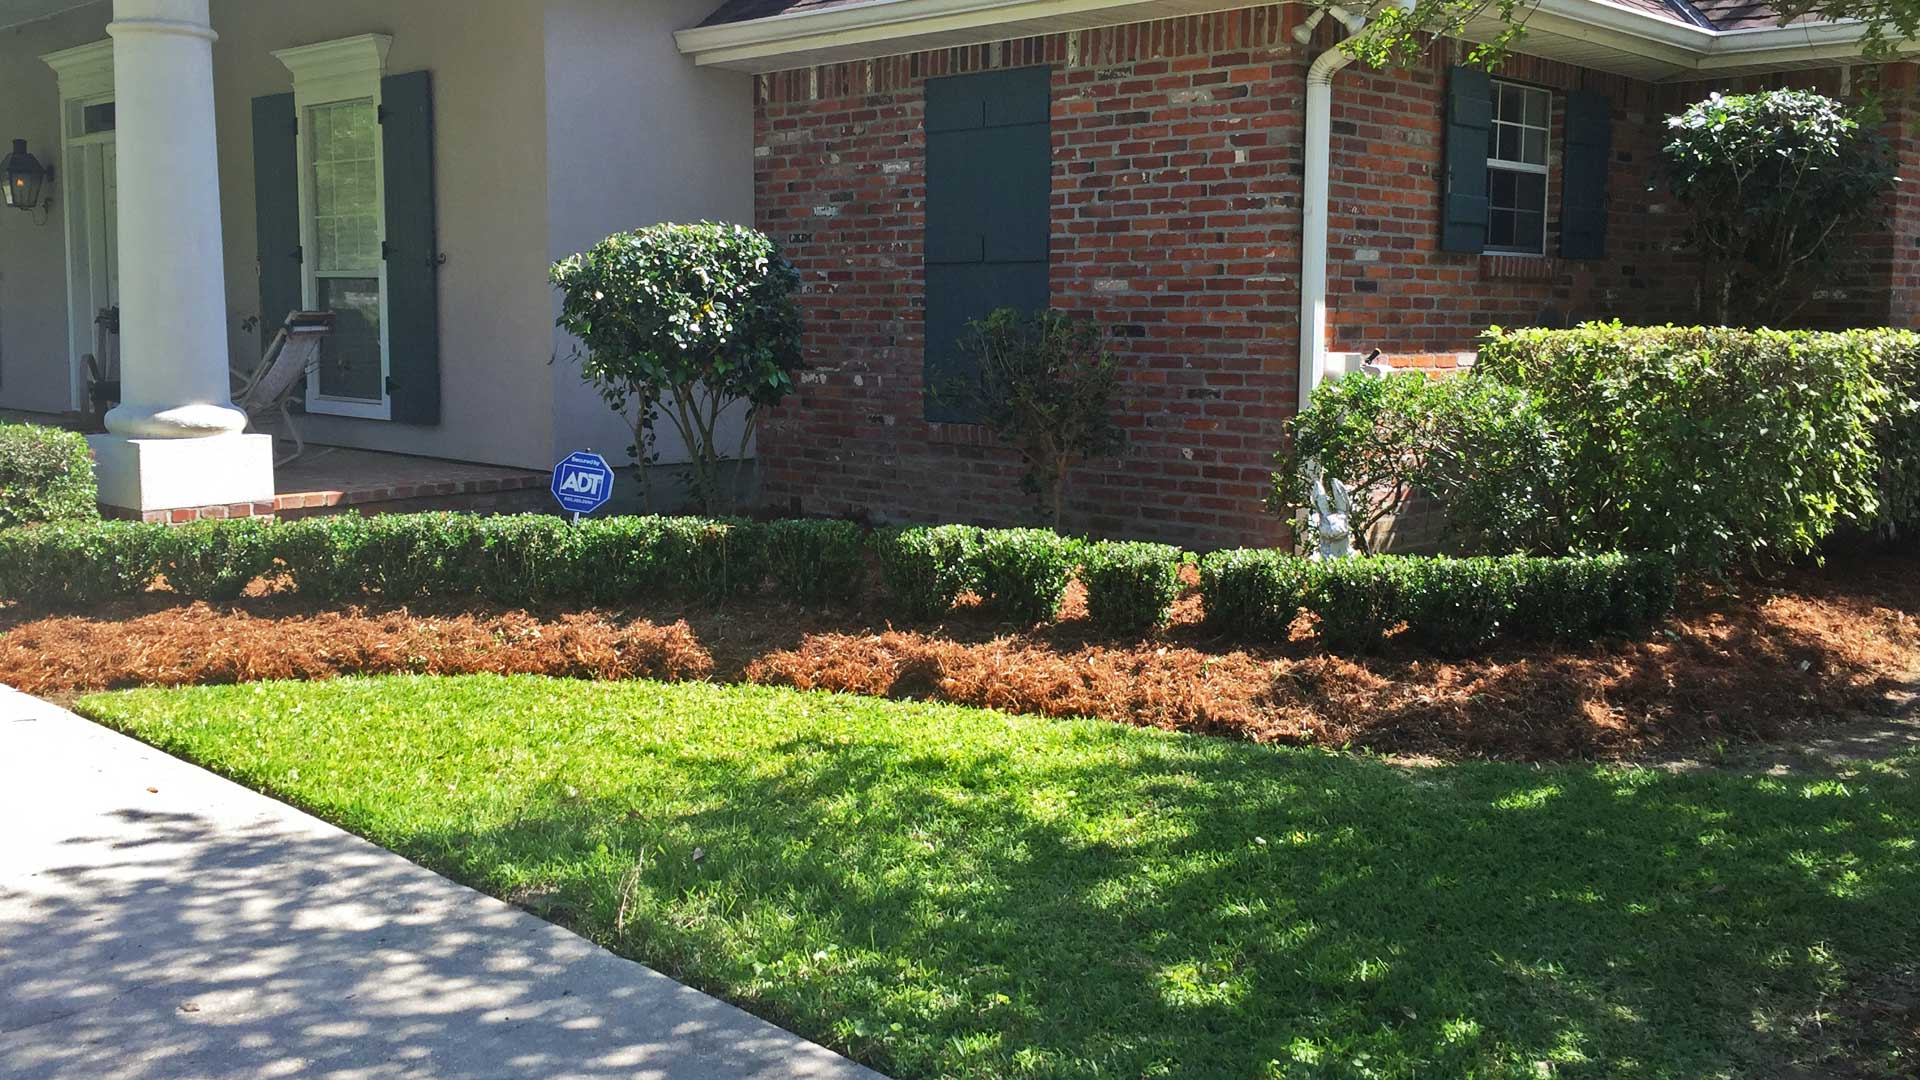 Beautifully maintained landscaping with new mulch at a residential property.